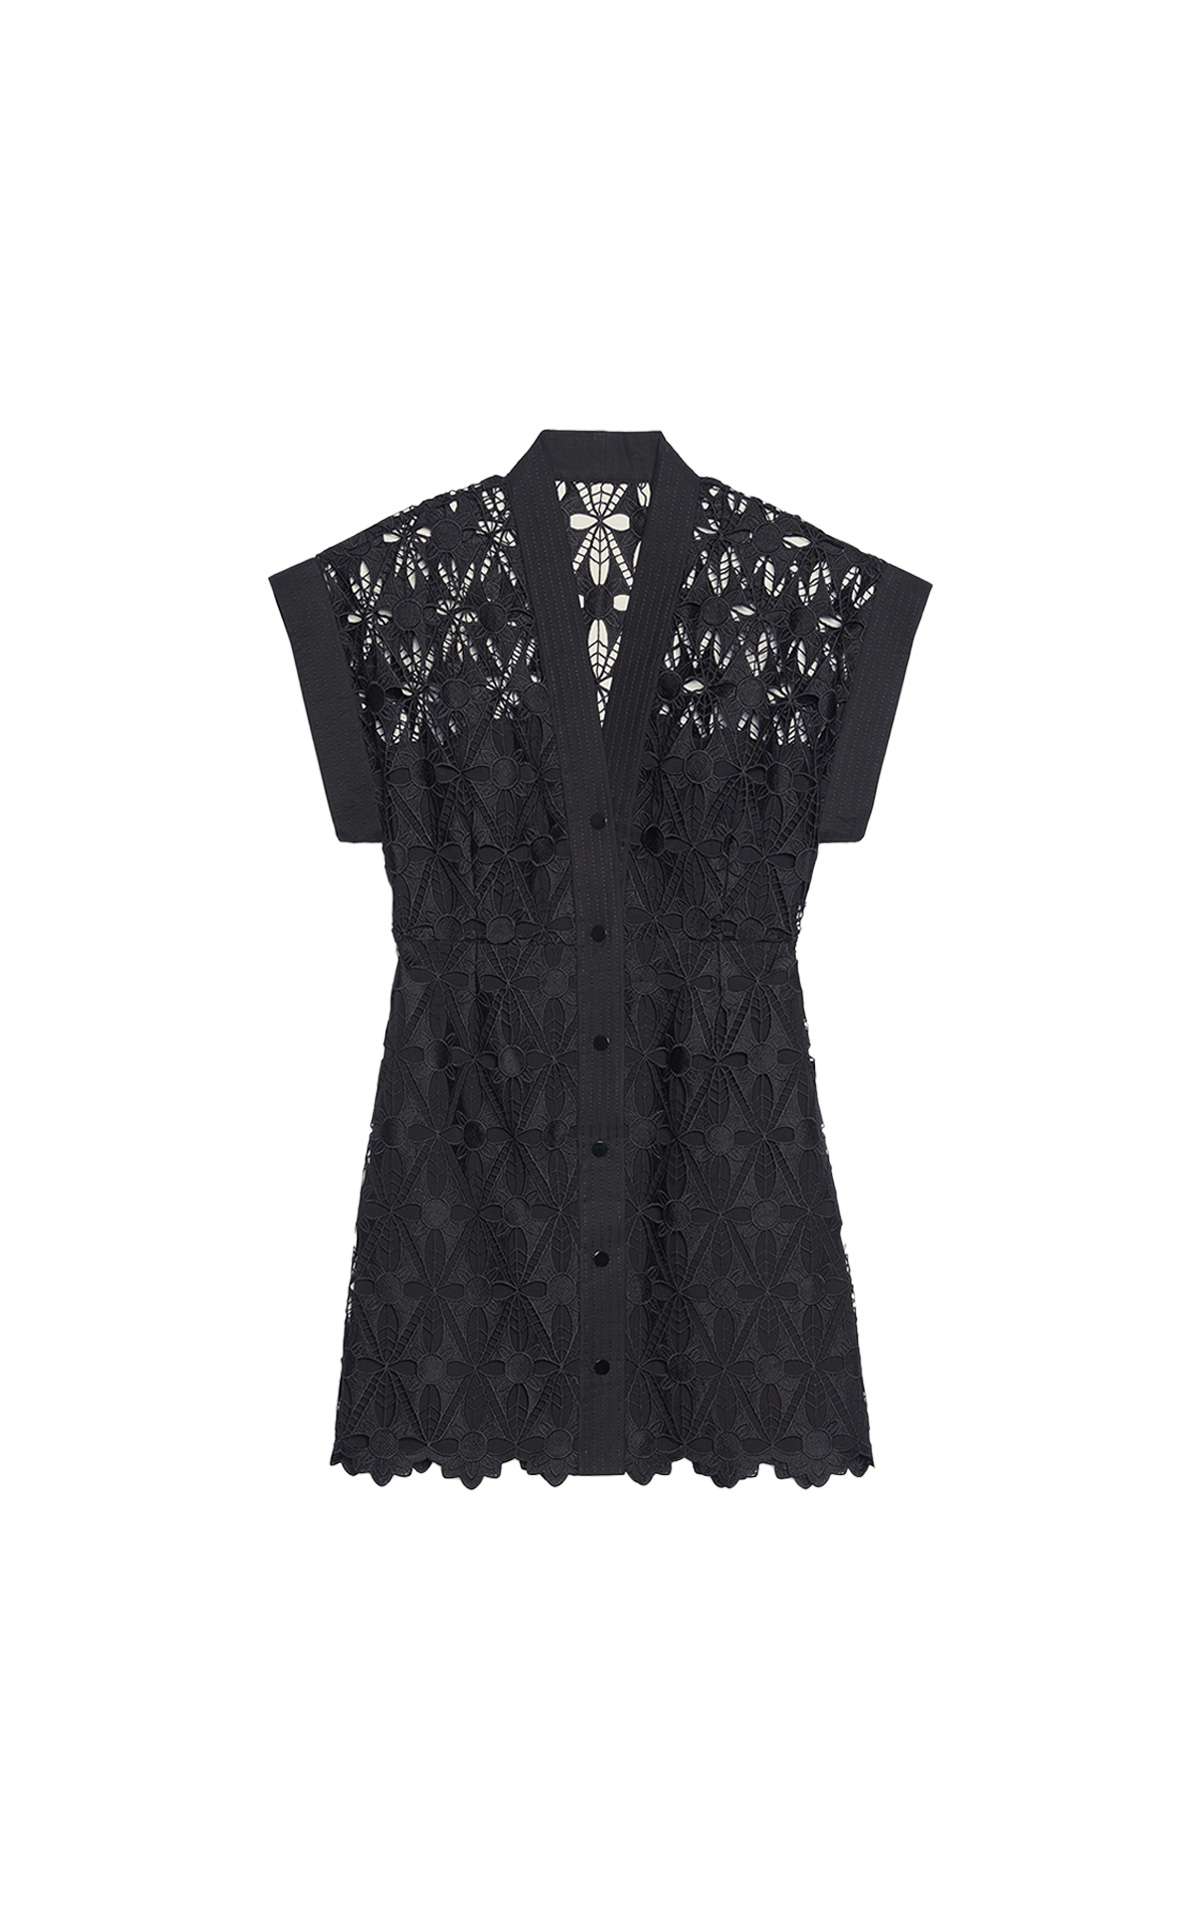 Sandro Short guipure V-neck dress with buttons along entire length. Short sleeves enhanced with a black topstitched cotton panel at The Bicester Village Shopping Collection